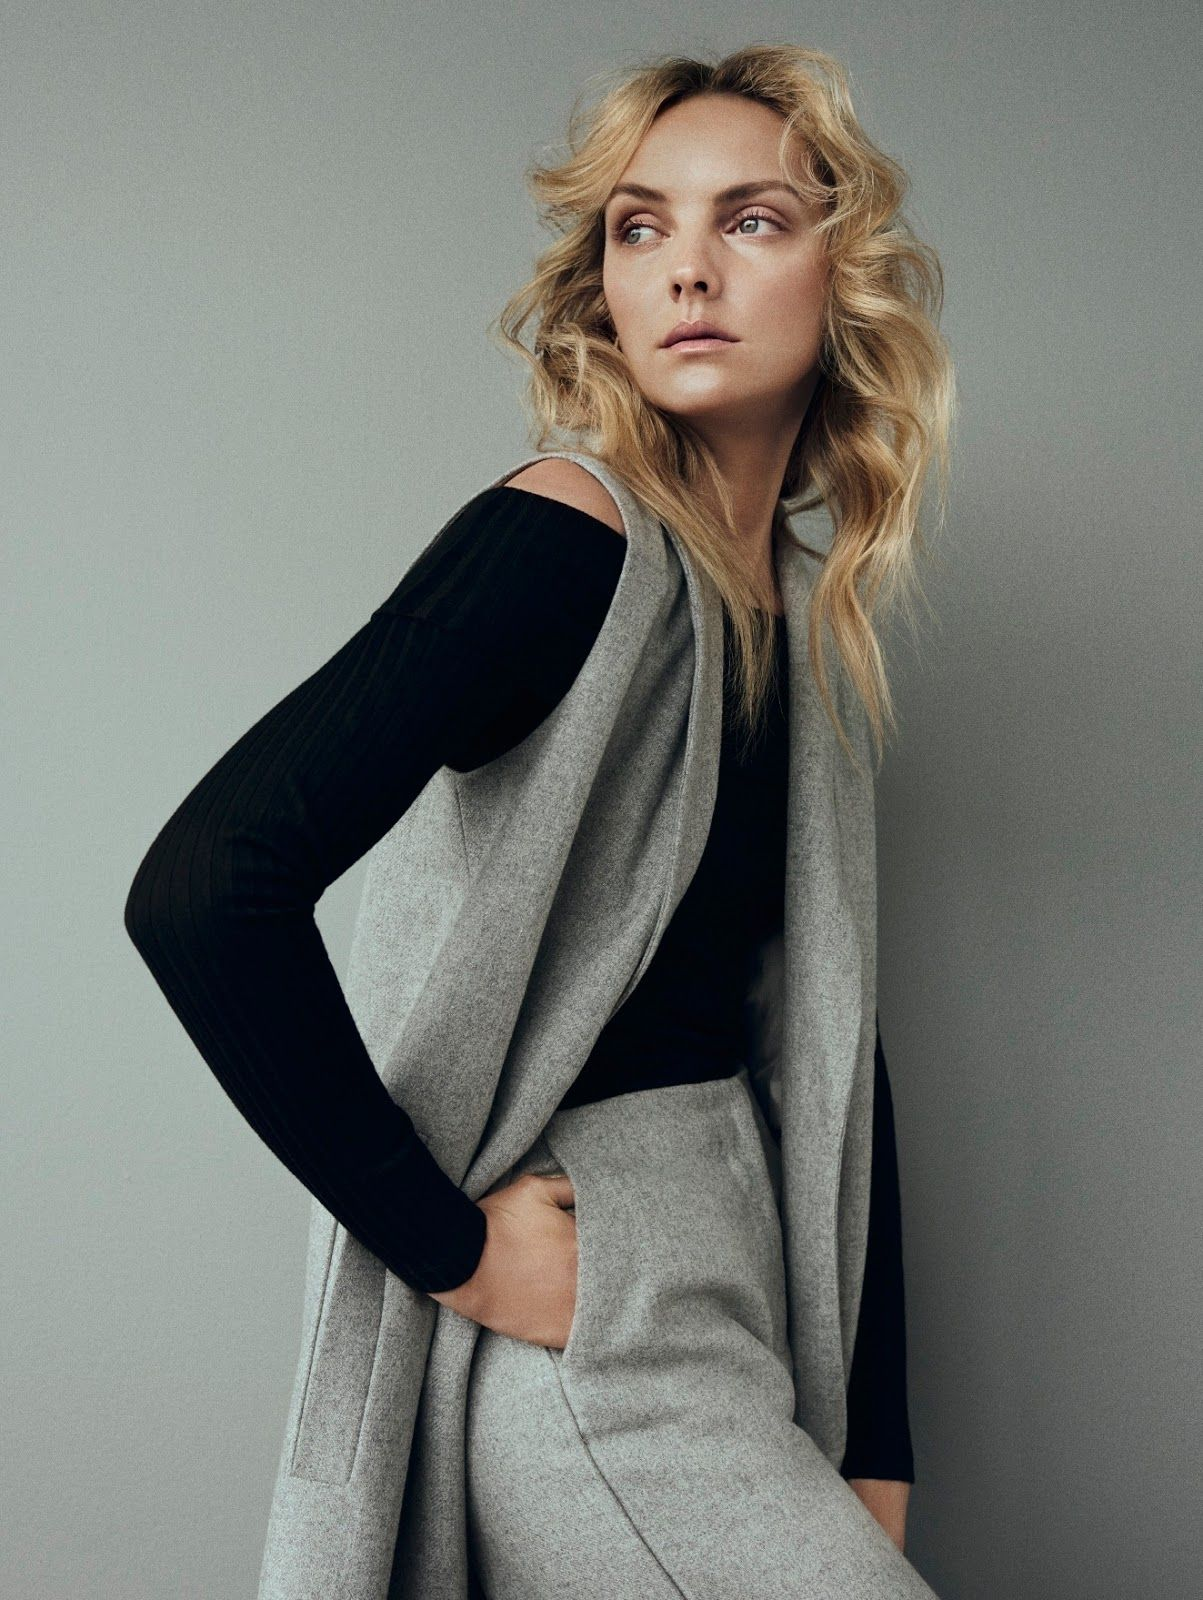 visual optimism; fashion editorials, shows, campaigns & more!: comfy minimalism: heather marks by henrik bülow for eurowoman august 2015